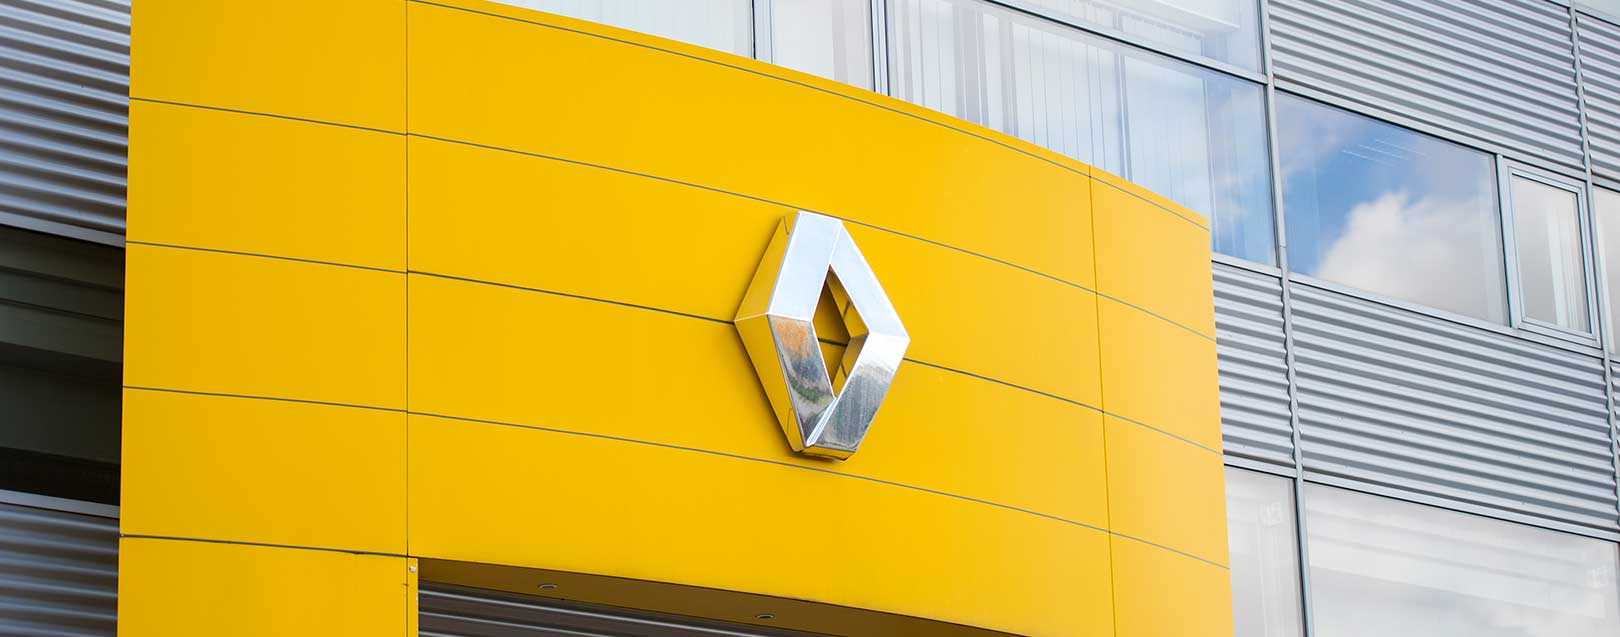 Renault expects sales growth of 8% in India this year